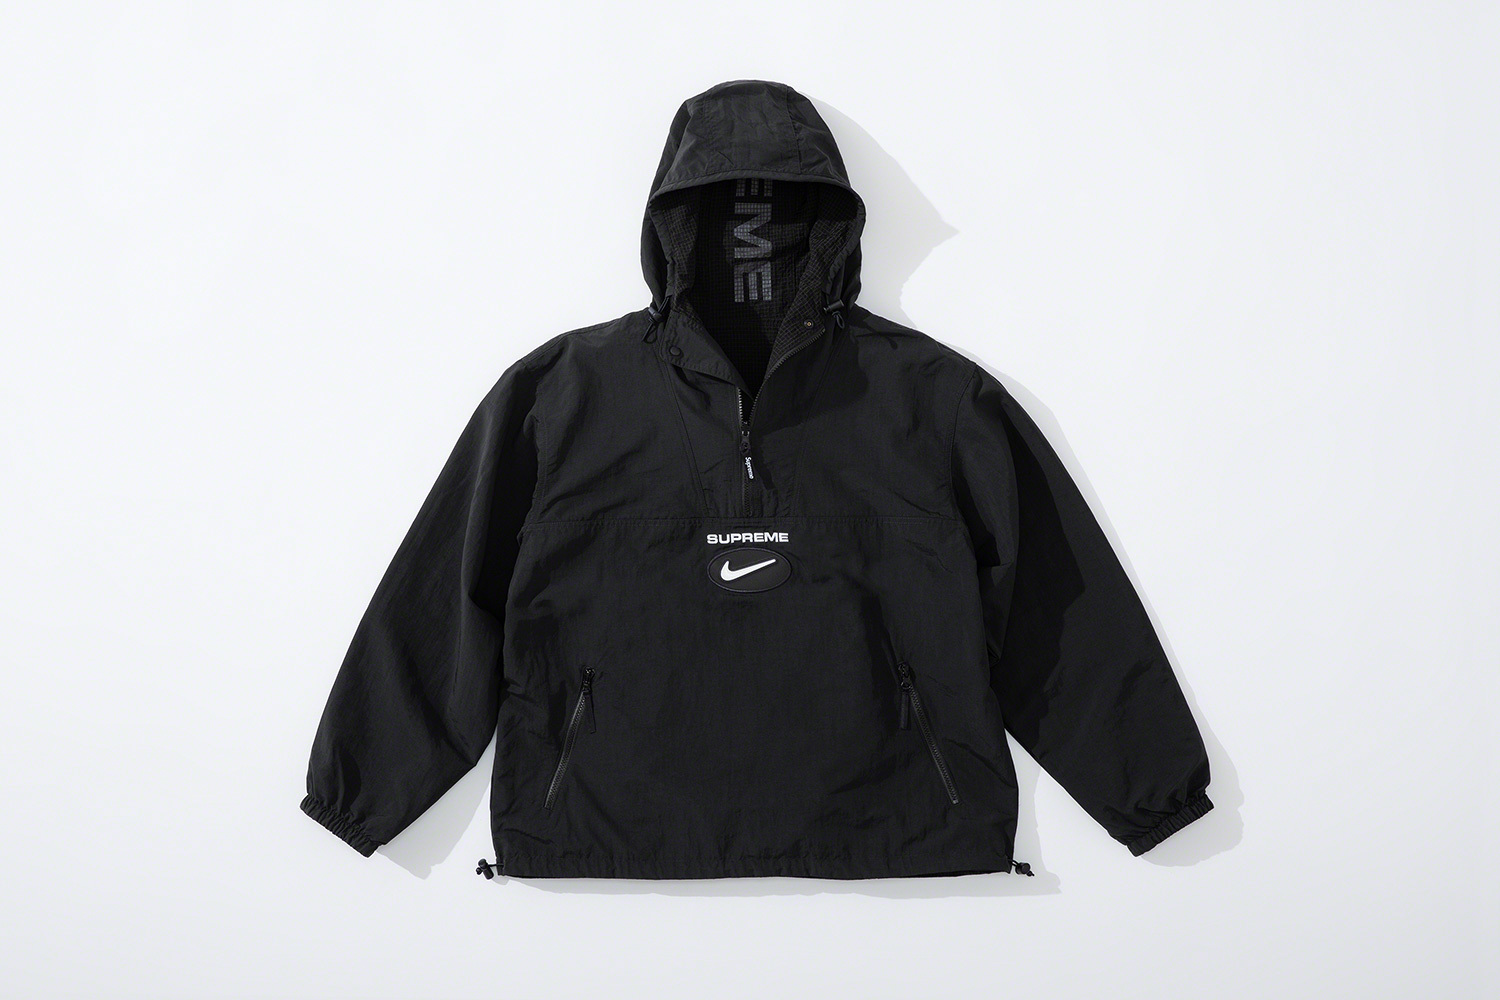 supreme-nike-collaboration-apparel-20fw-20aw-release-20200905-week2